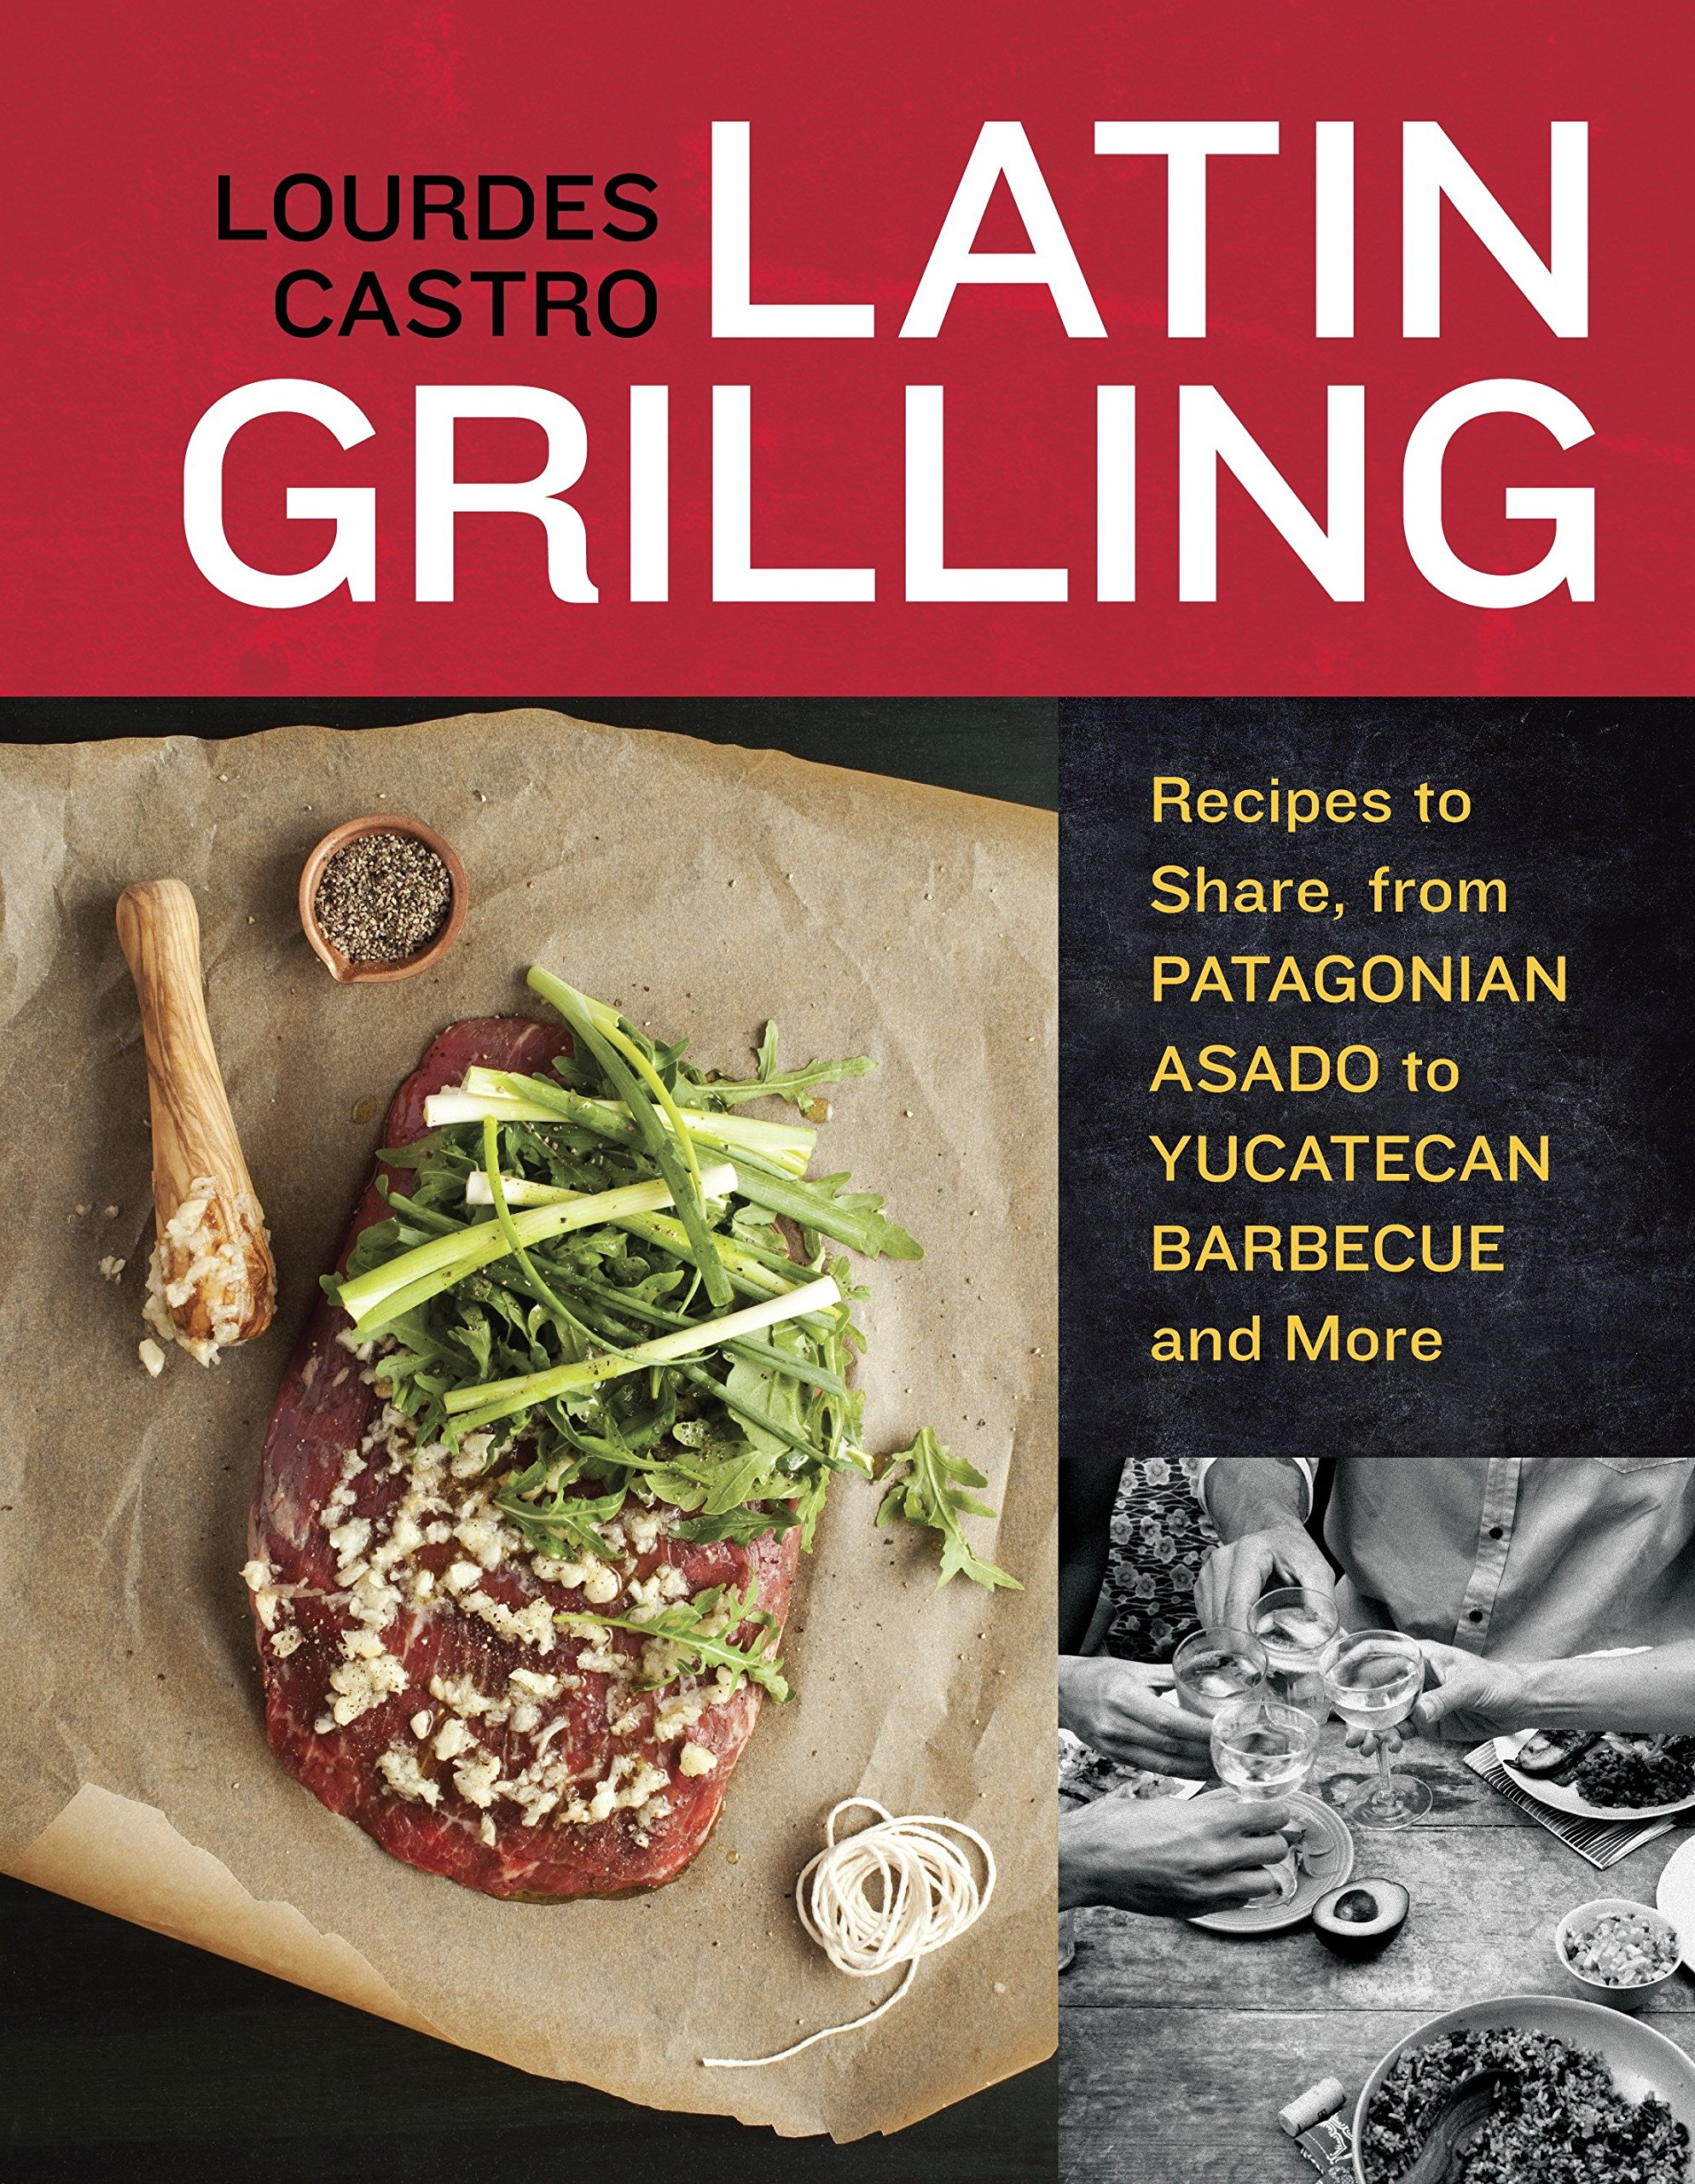 Latin Grilling: Recipes to Share from Patagonian Asado to Yucatecan Barbecue and More [A Cookbook]